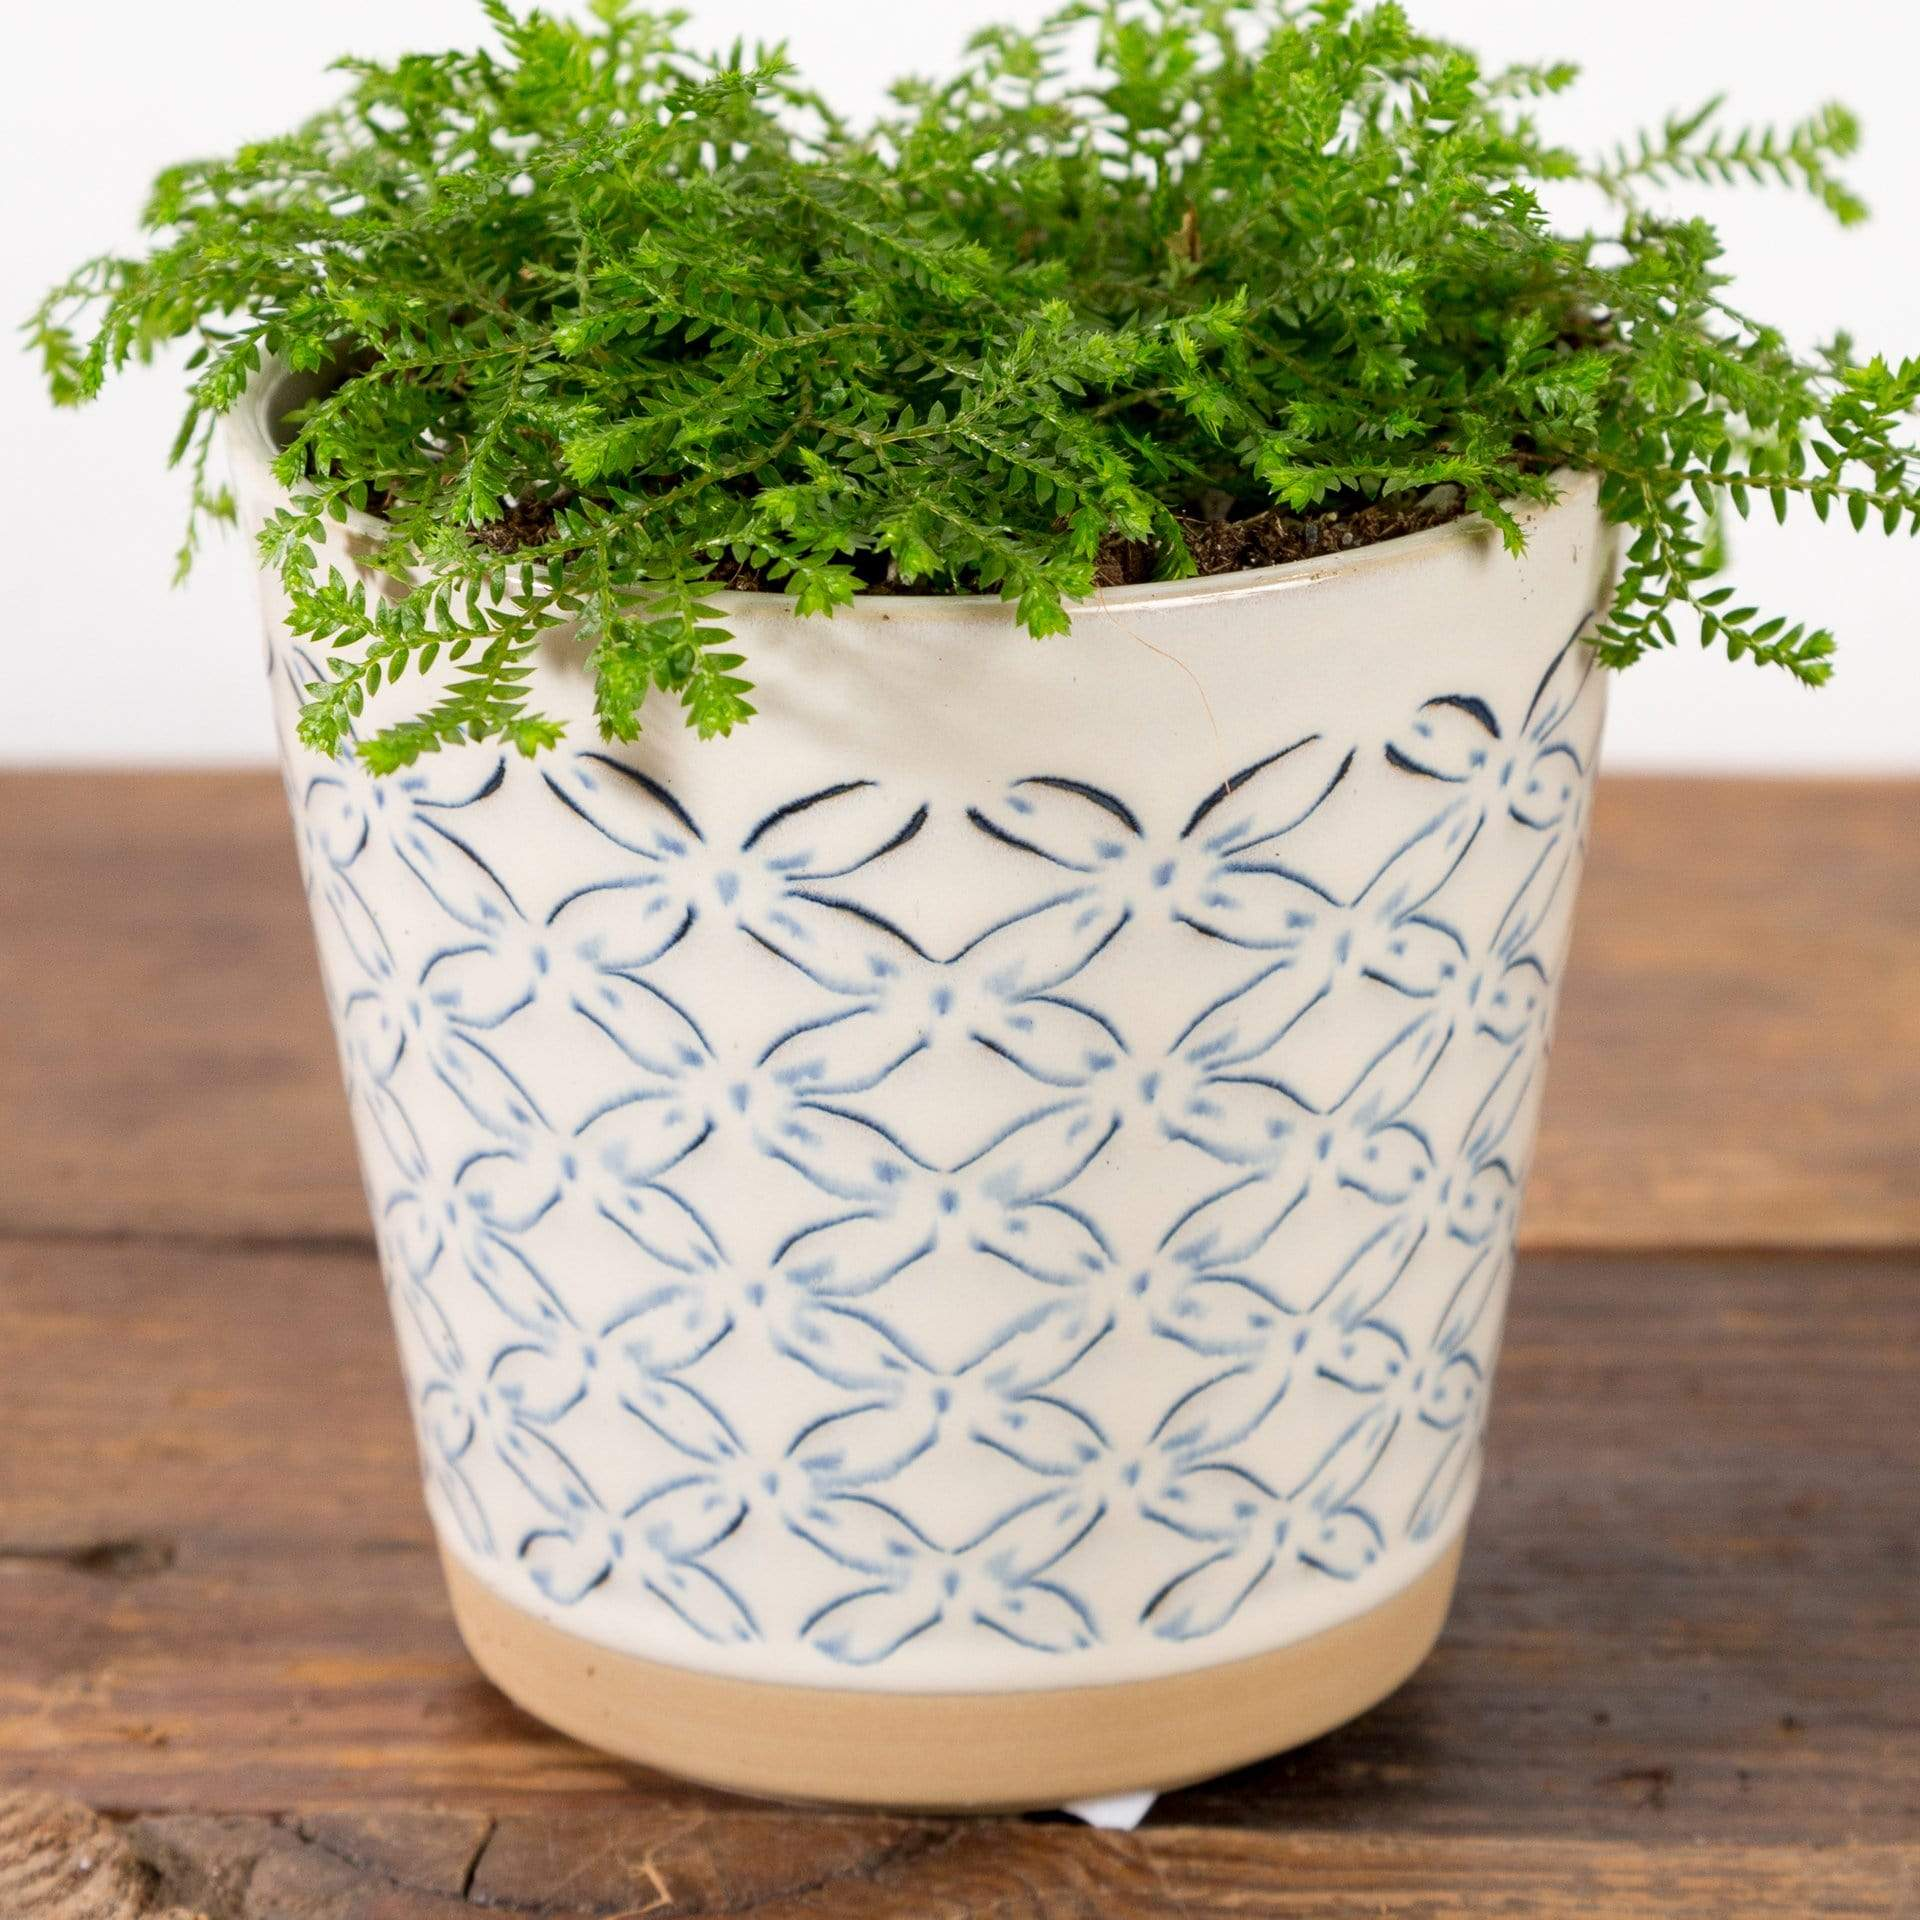 Floral Stamped Planter - Urban Sprouts